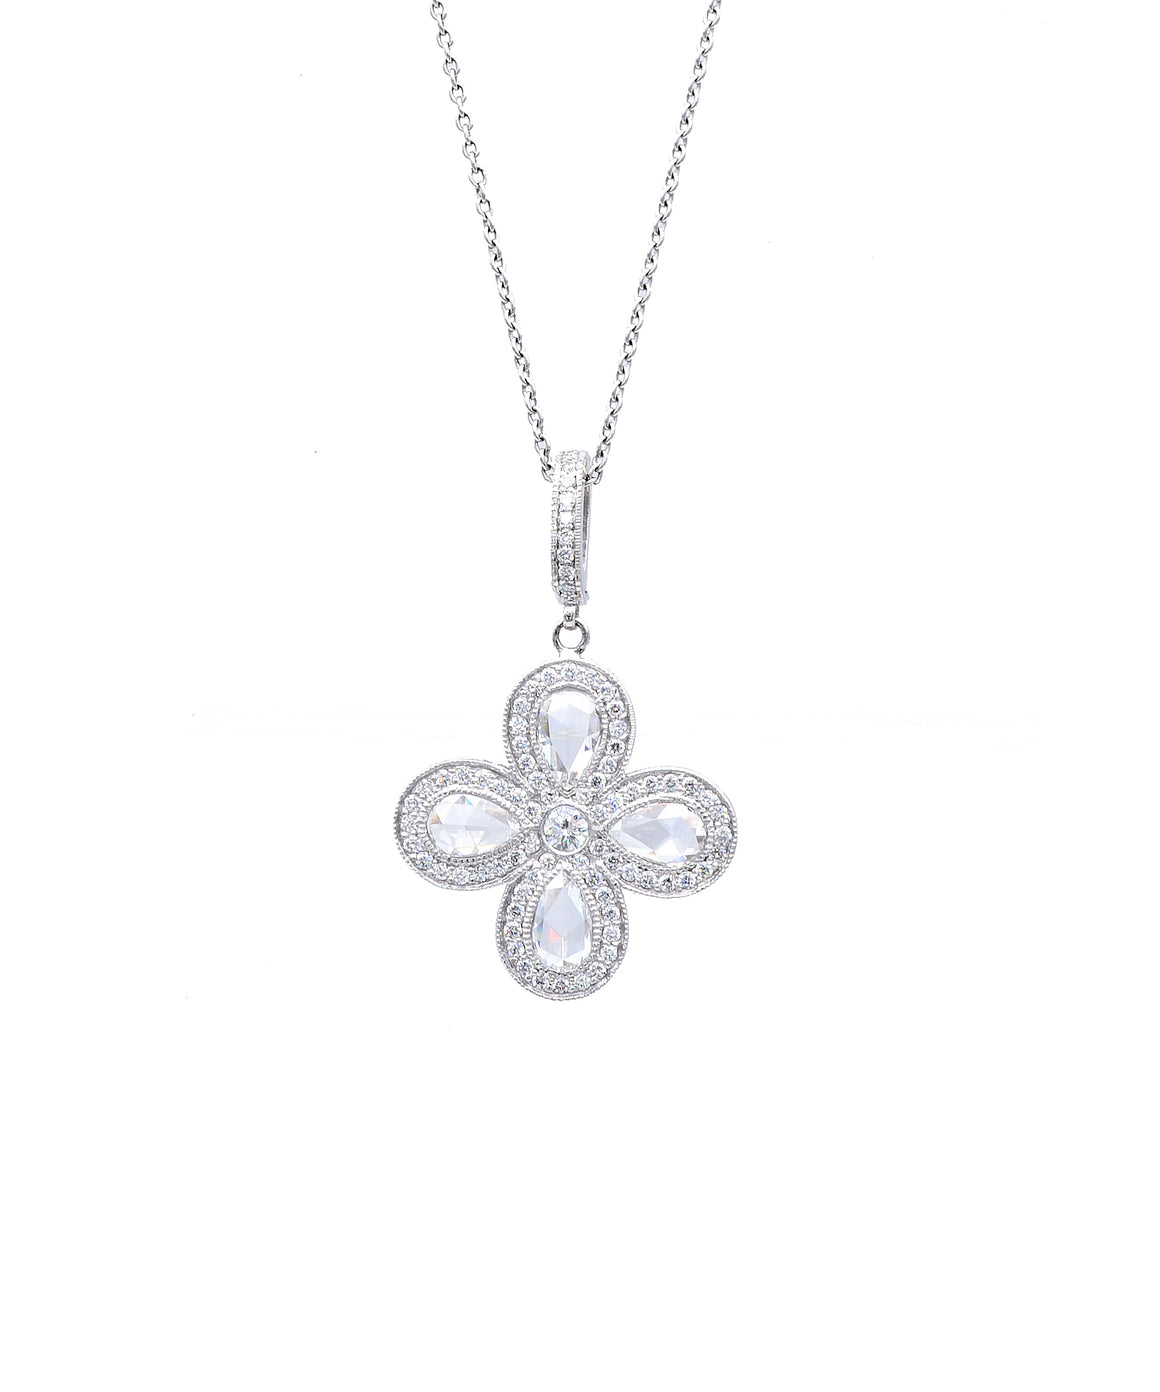 Cross with Rose Cut Diamonds - Lesley Ann Jewels